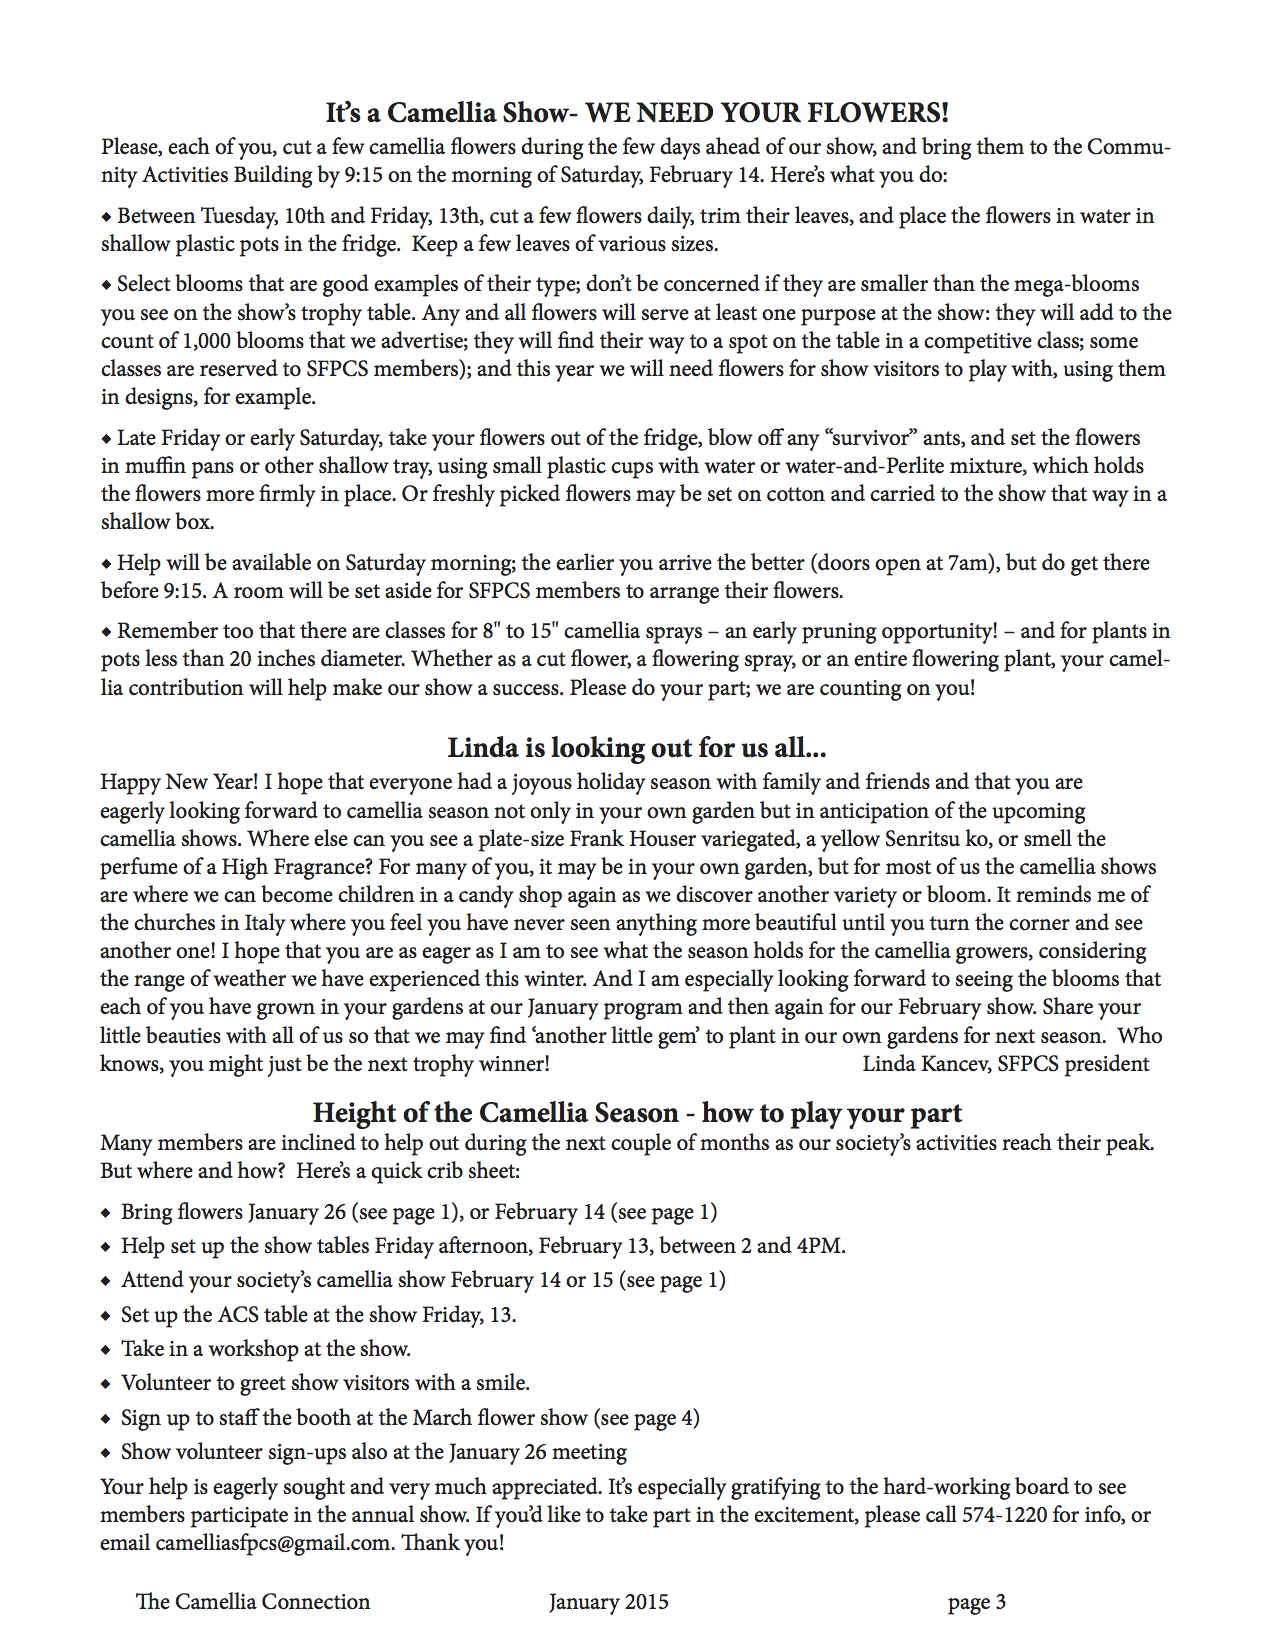 January 2015 newsletter p3